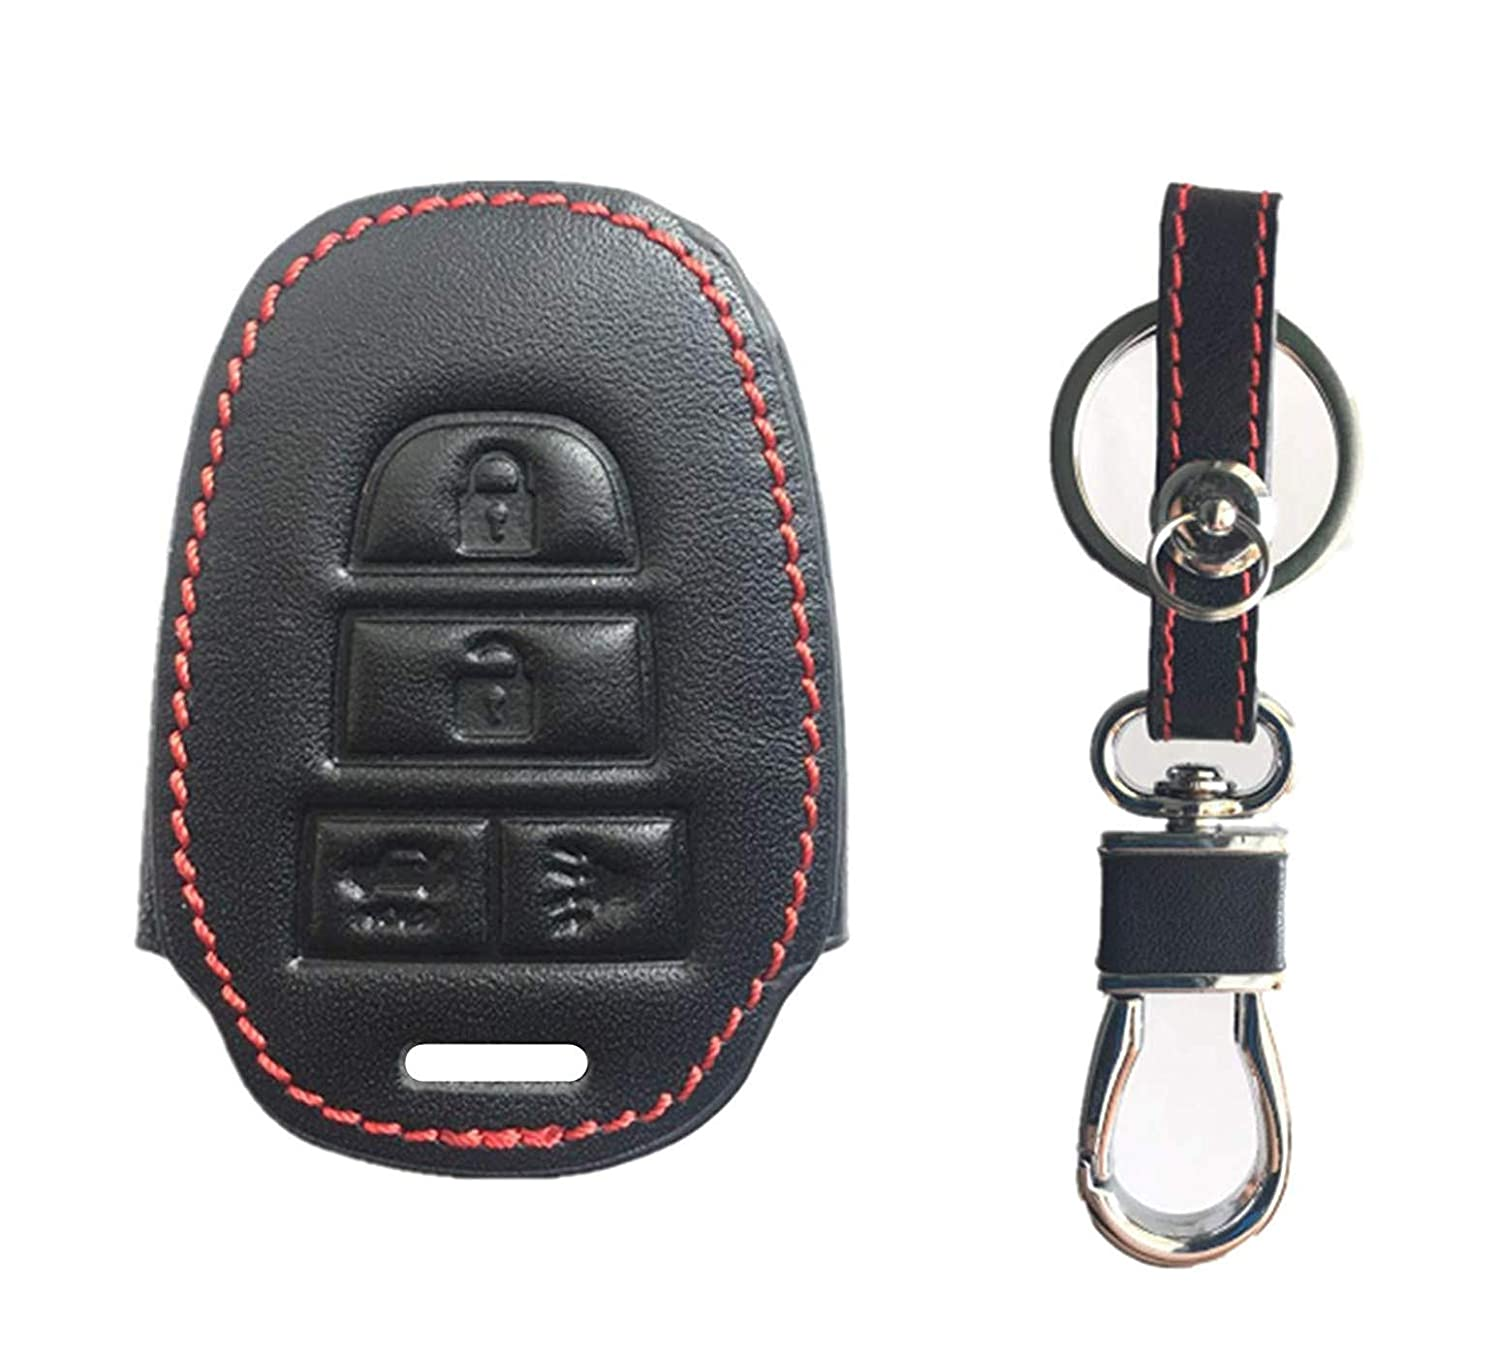 4 Btn KAWIHEN Smart Remote Keyless Entry Key Fob Leather Cover For 2012 2013 2014 2015 2016 2017 Toyota Camry 2014 2015 2016 2017 Toyota Corolla HYQ12BDM HYQ12BEL 1551A-12BDM 89070-06420